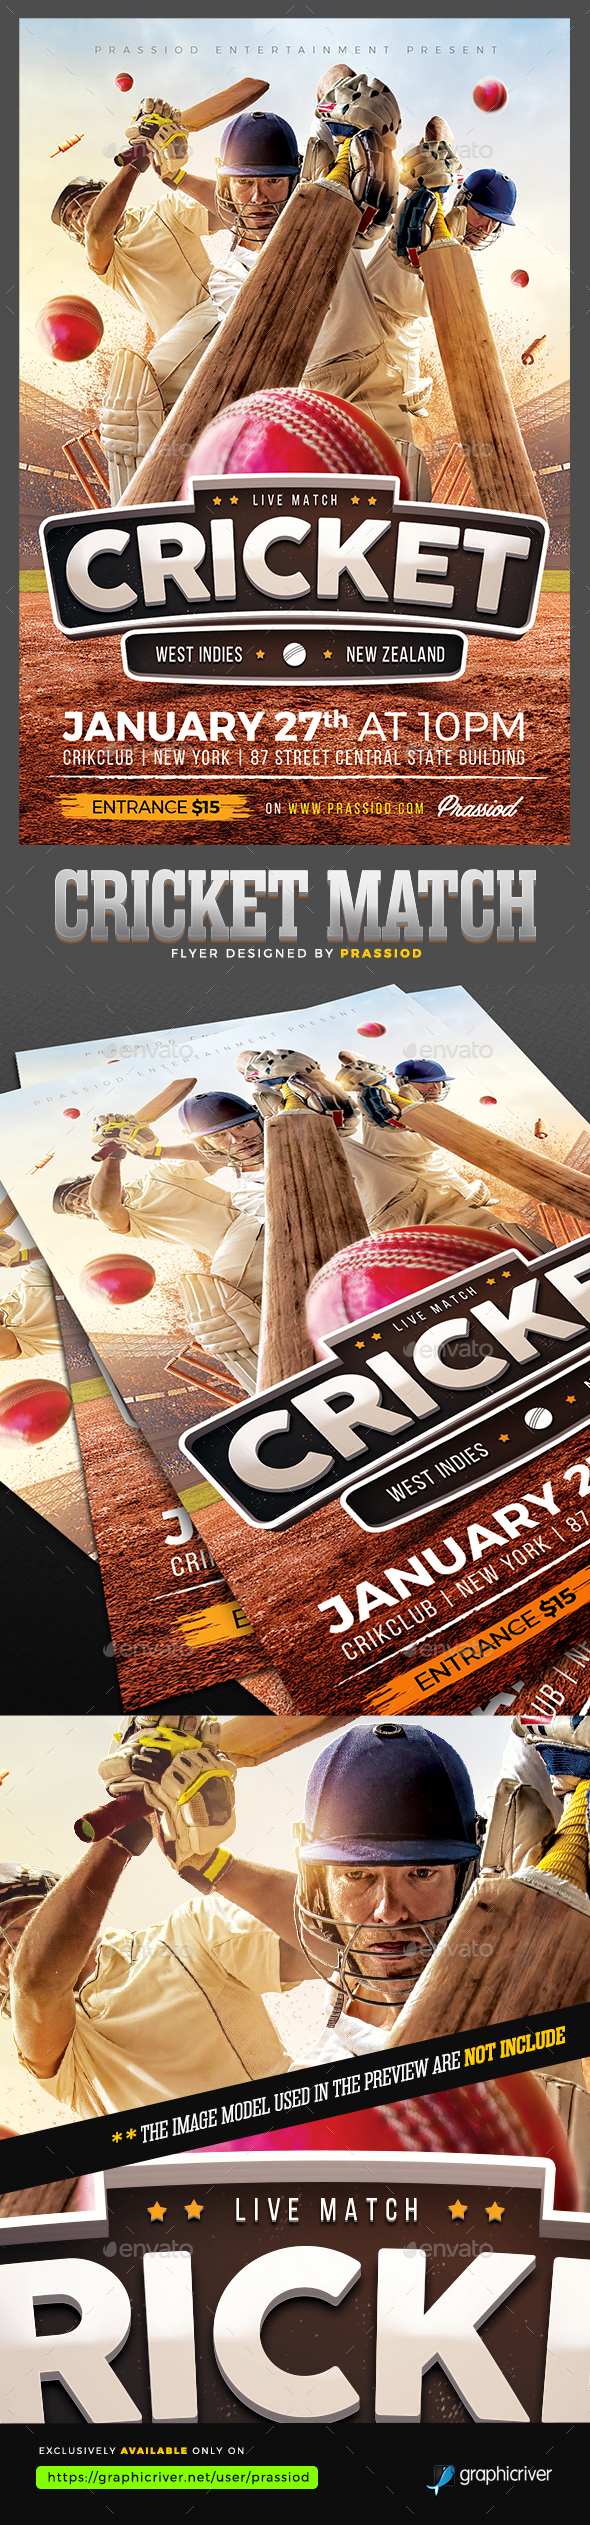 Cricket Match Flyer Template - Sports Events